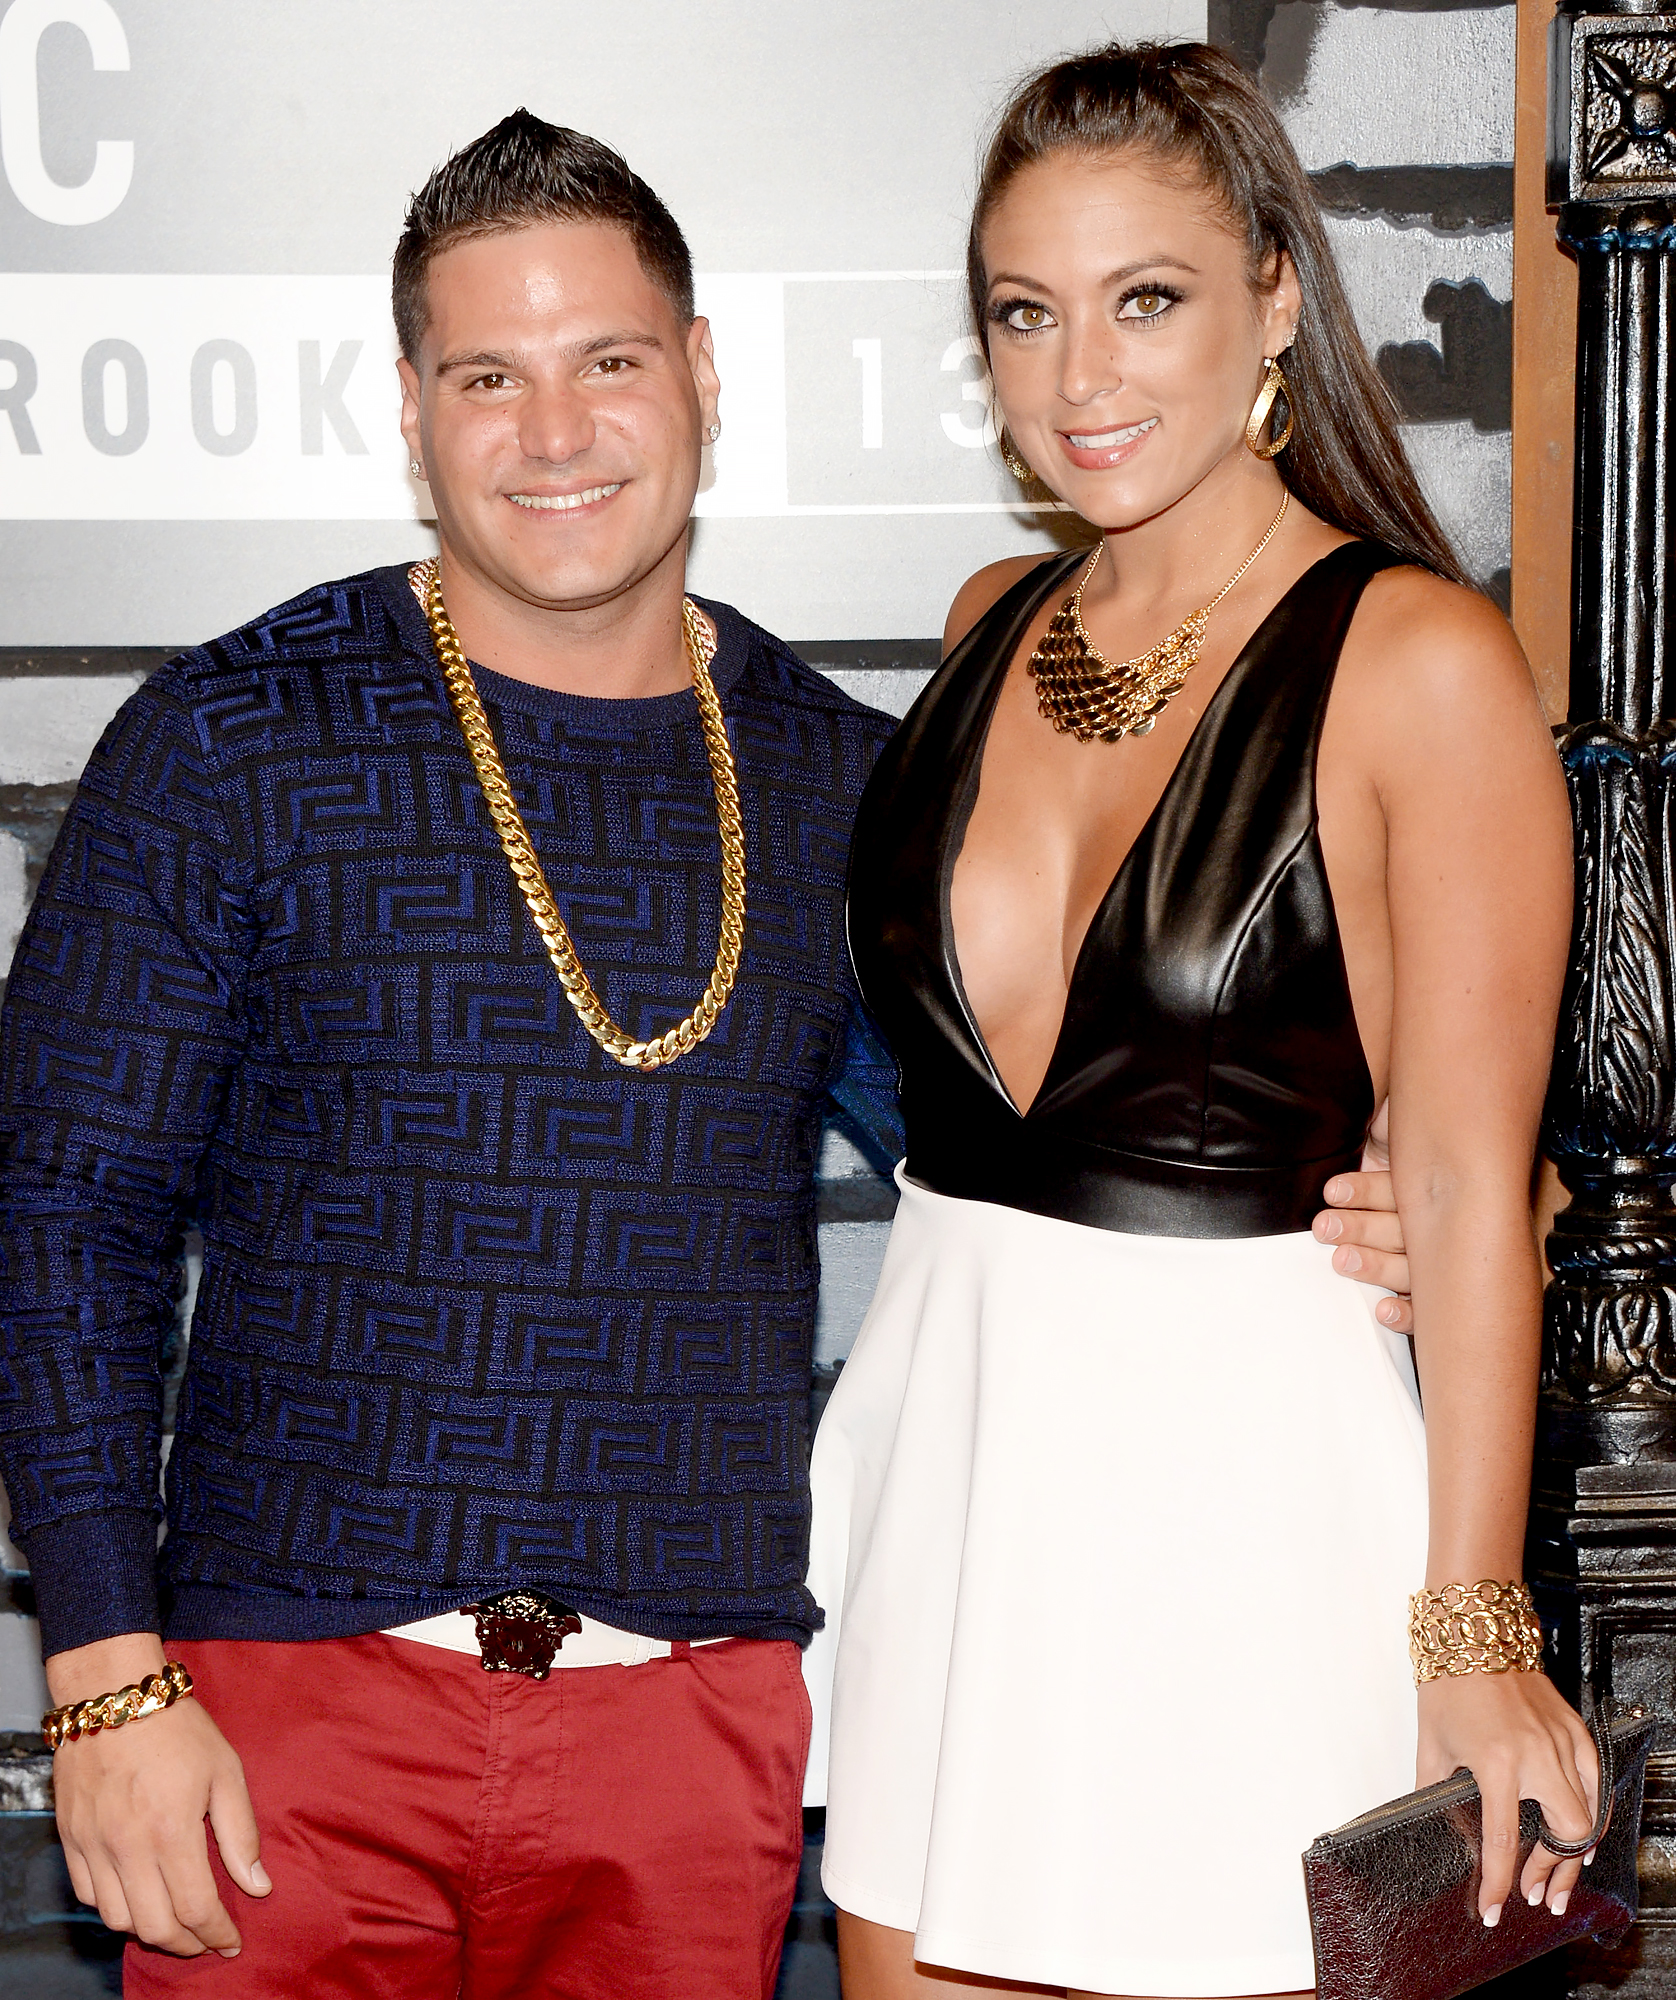 Ronnie-Magro-and-Sammi-Giancola-engagement